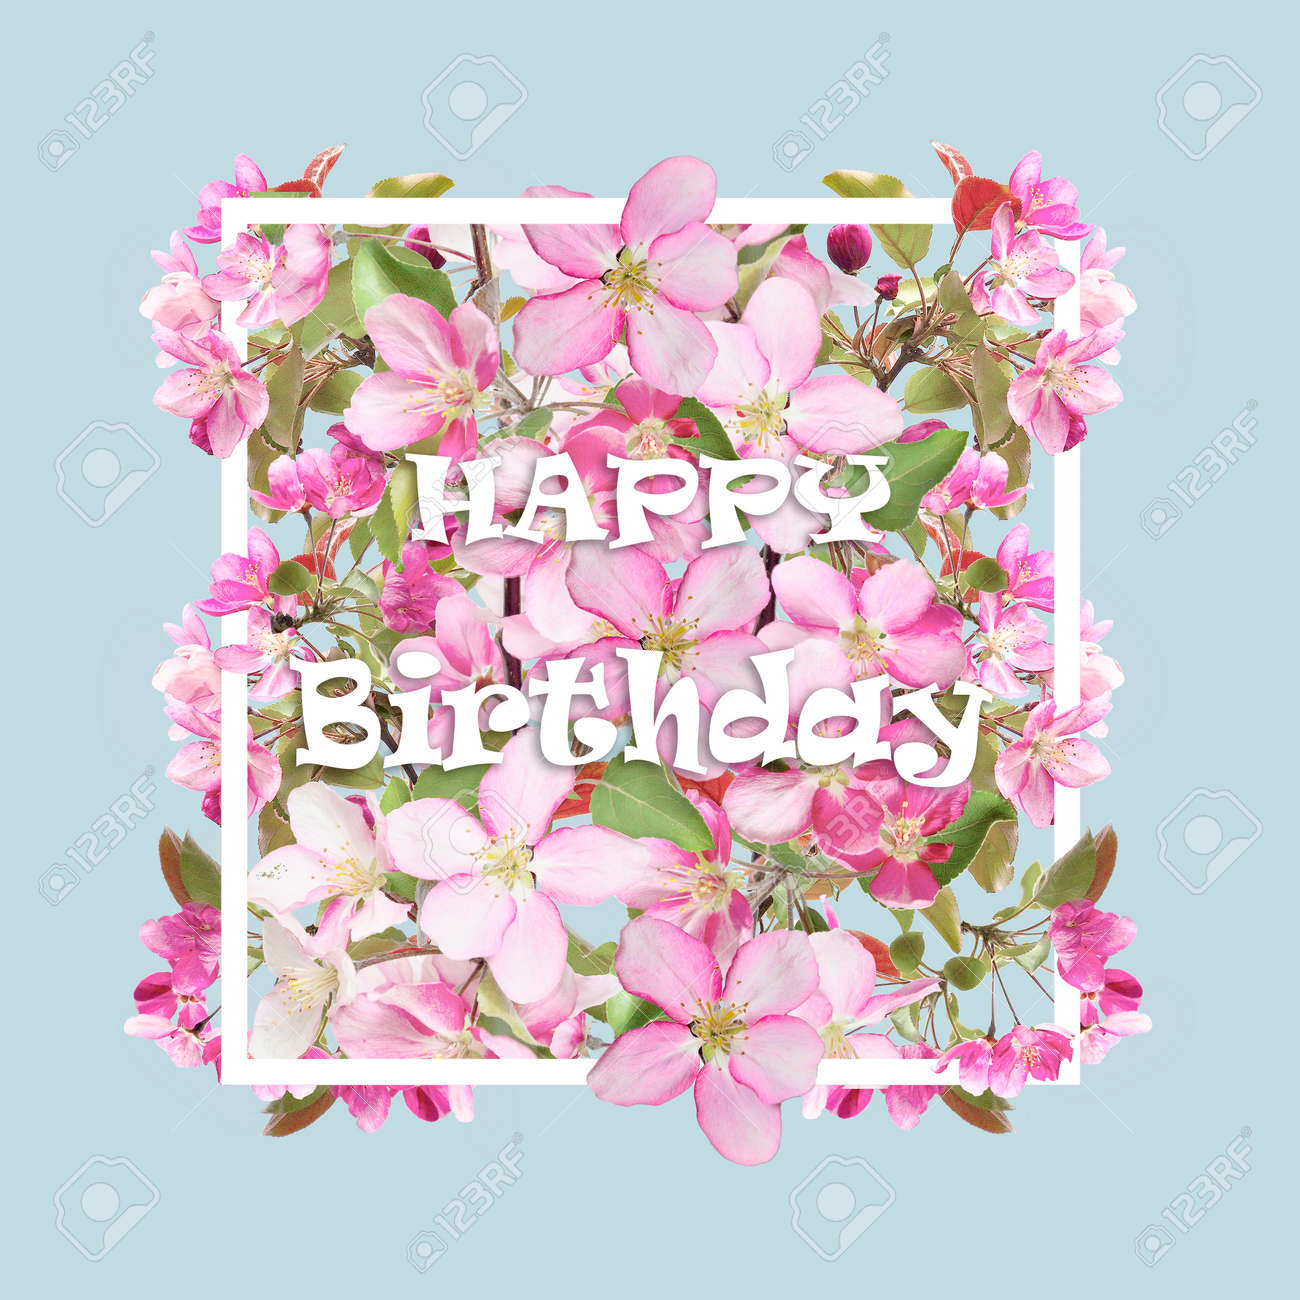 Floral Spring Greeting Card With Cherry Blossom Flowers In The